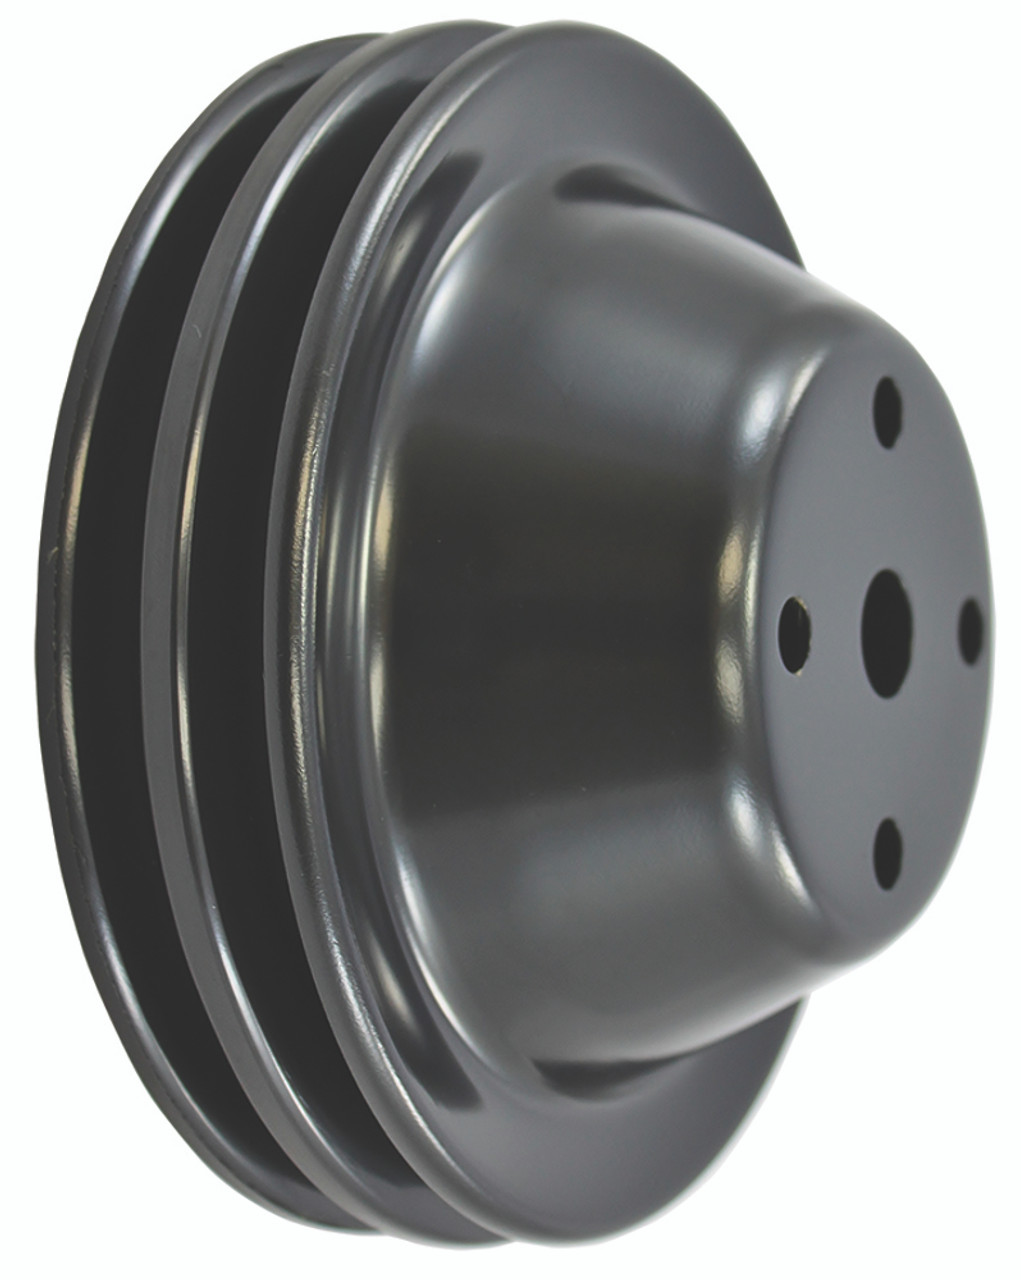 Double/Triple Groove Pulley Kit, Fits Chevy SBC Long Water Pump, Black Steel, 283-350 V8